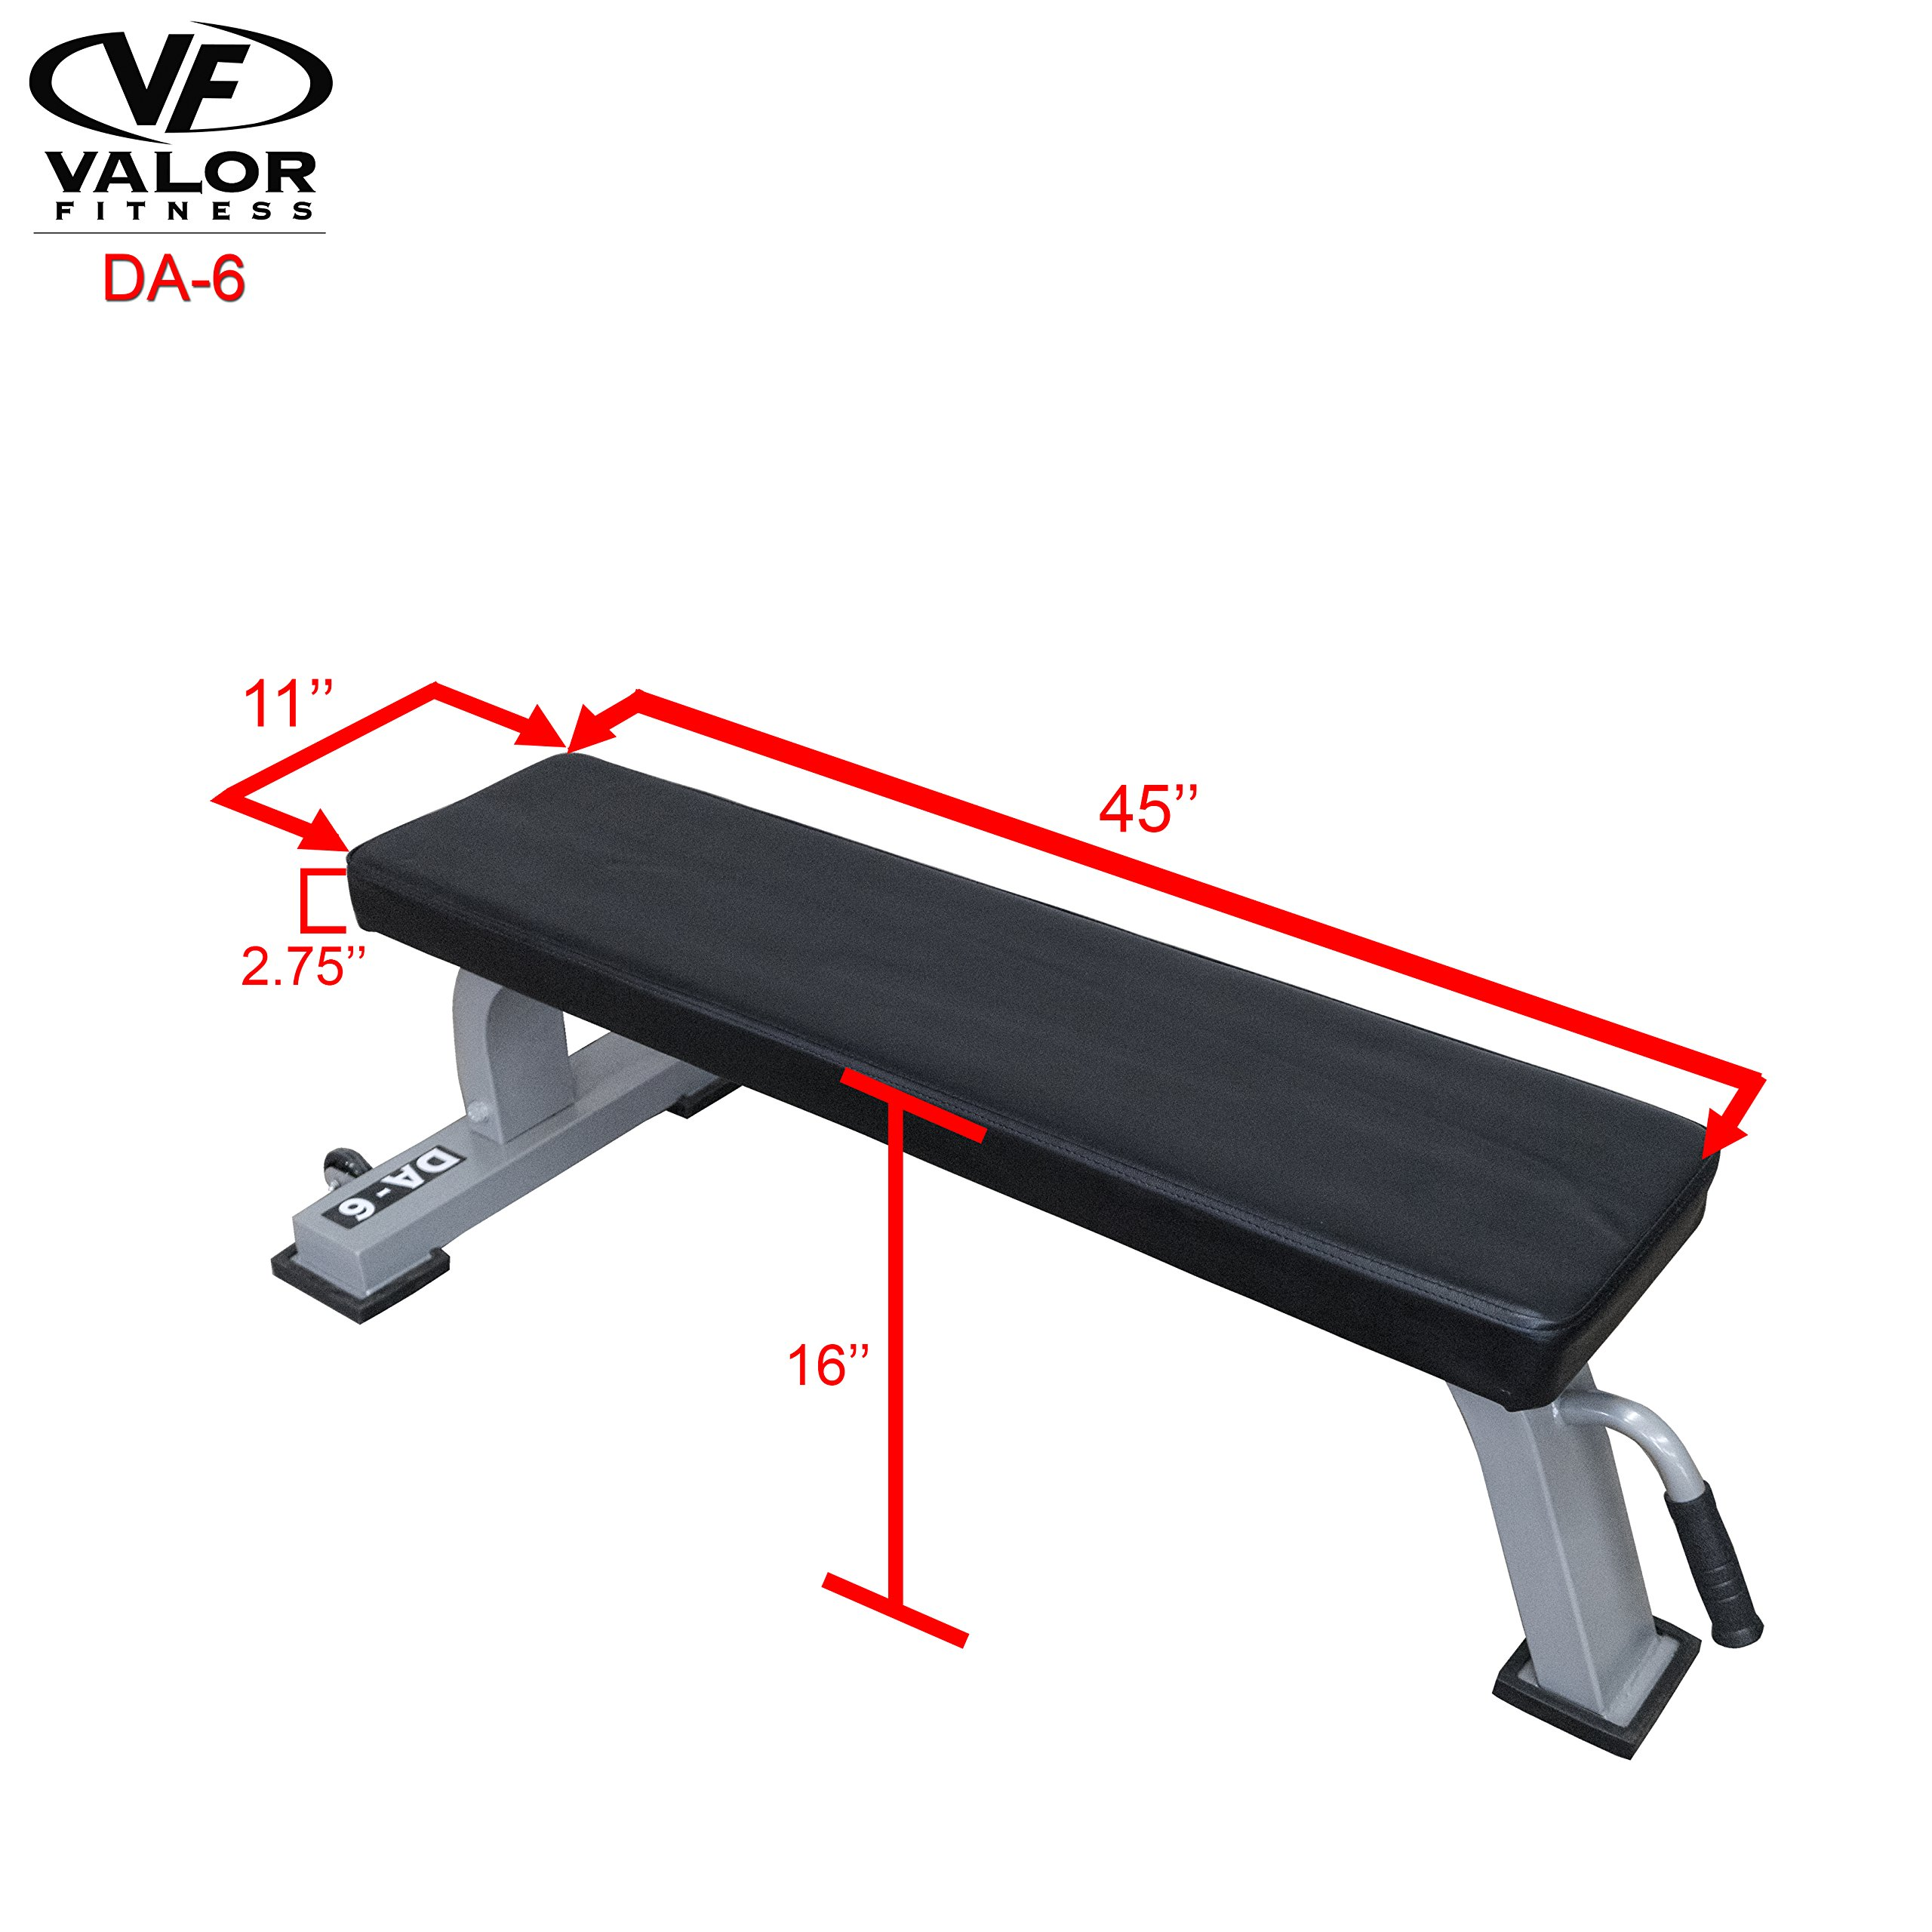 Valor Fitness DA-6 Flat Bench by Valor Fitness (Image #6)